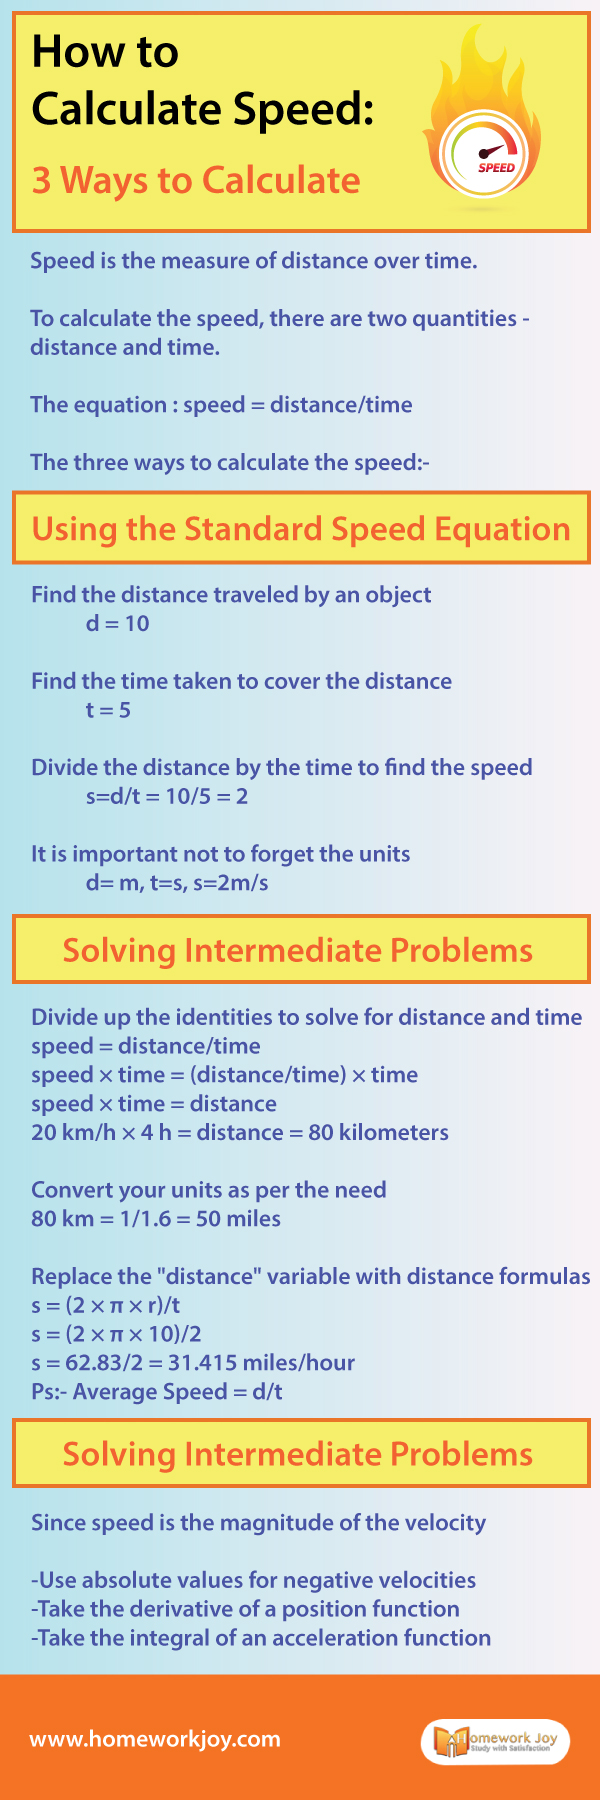 How to Calculate Speed